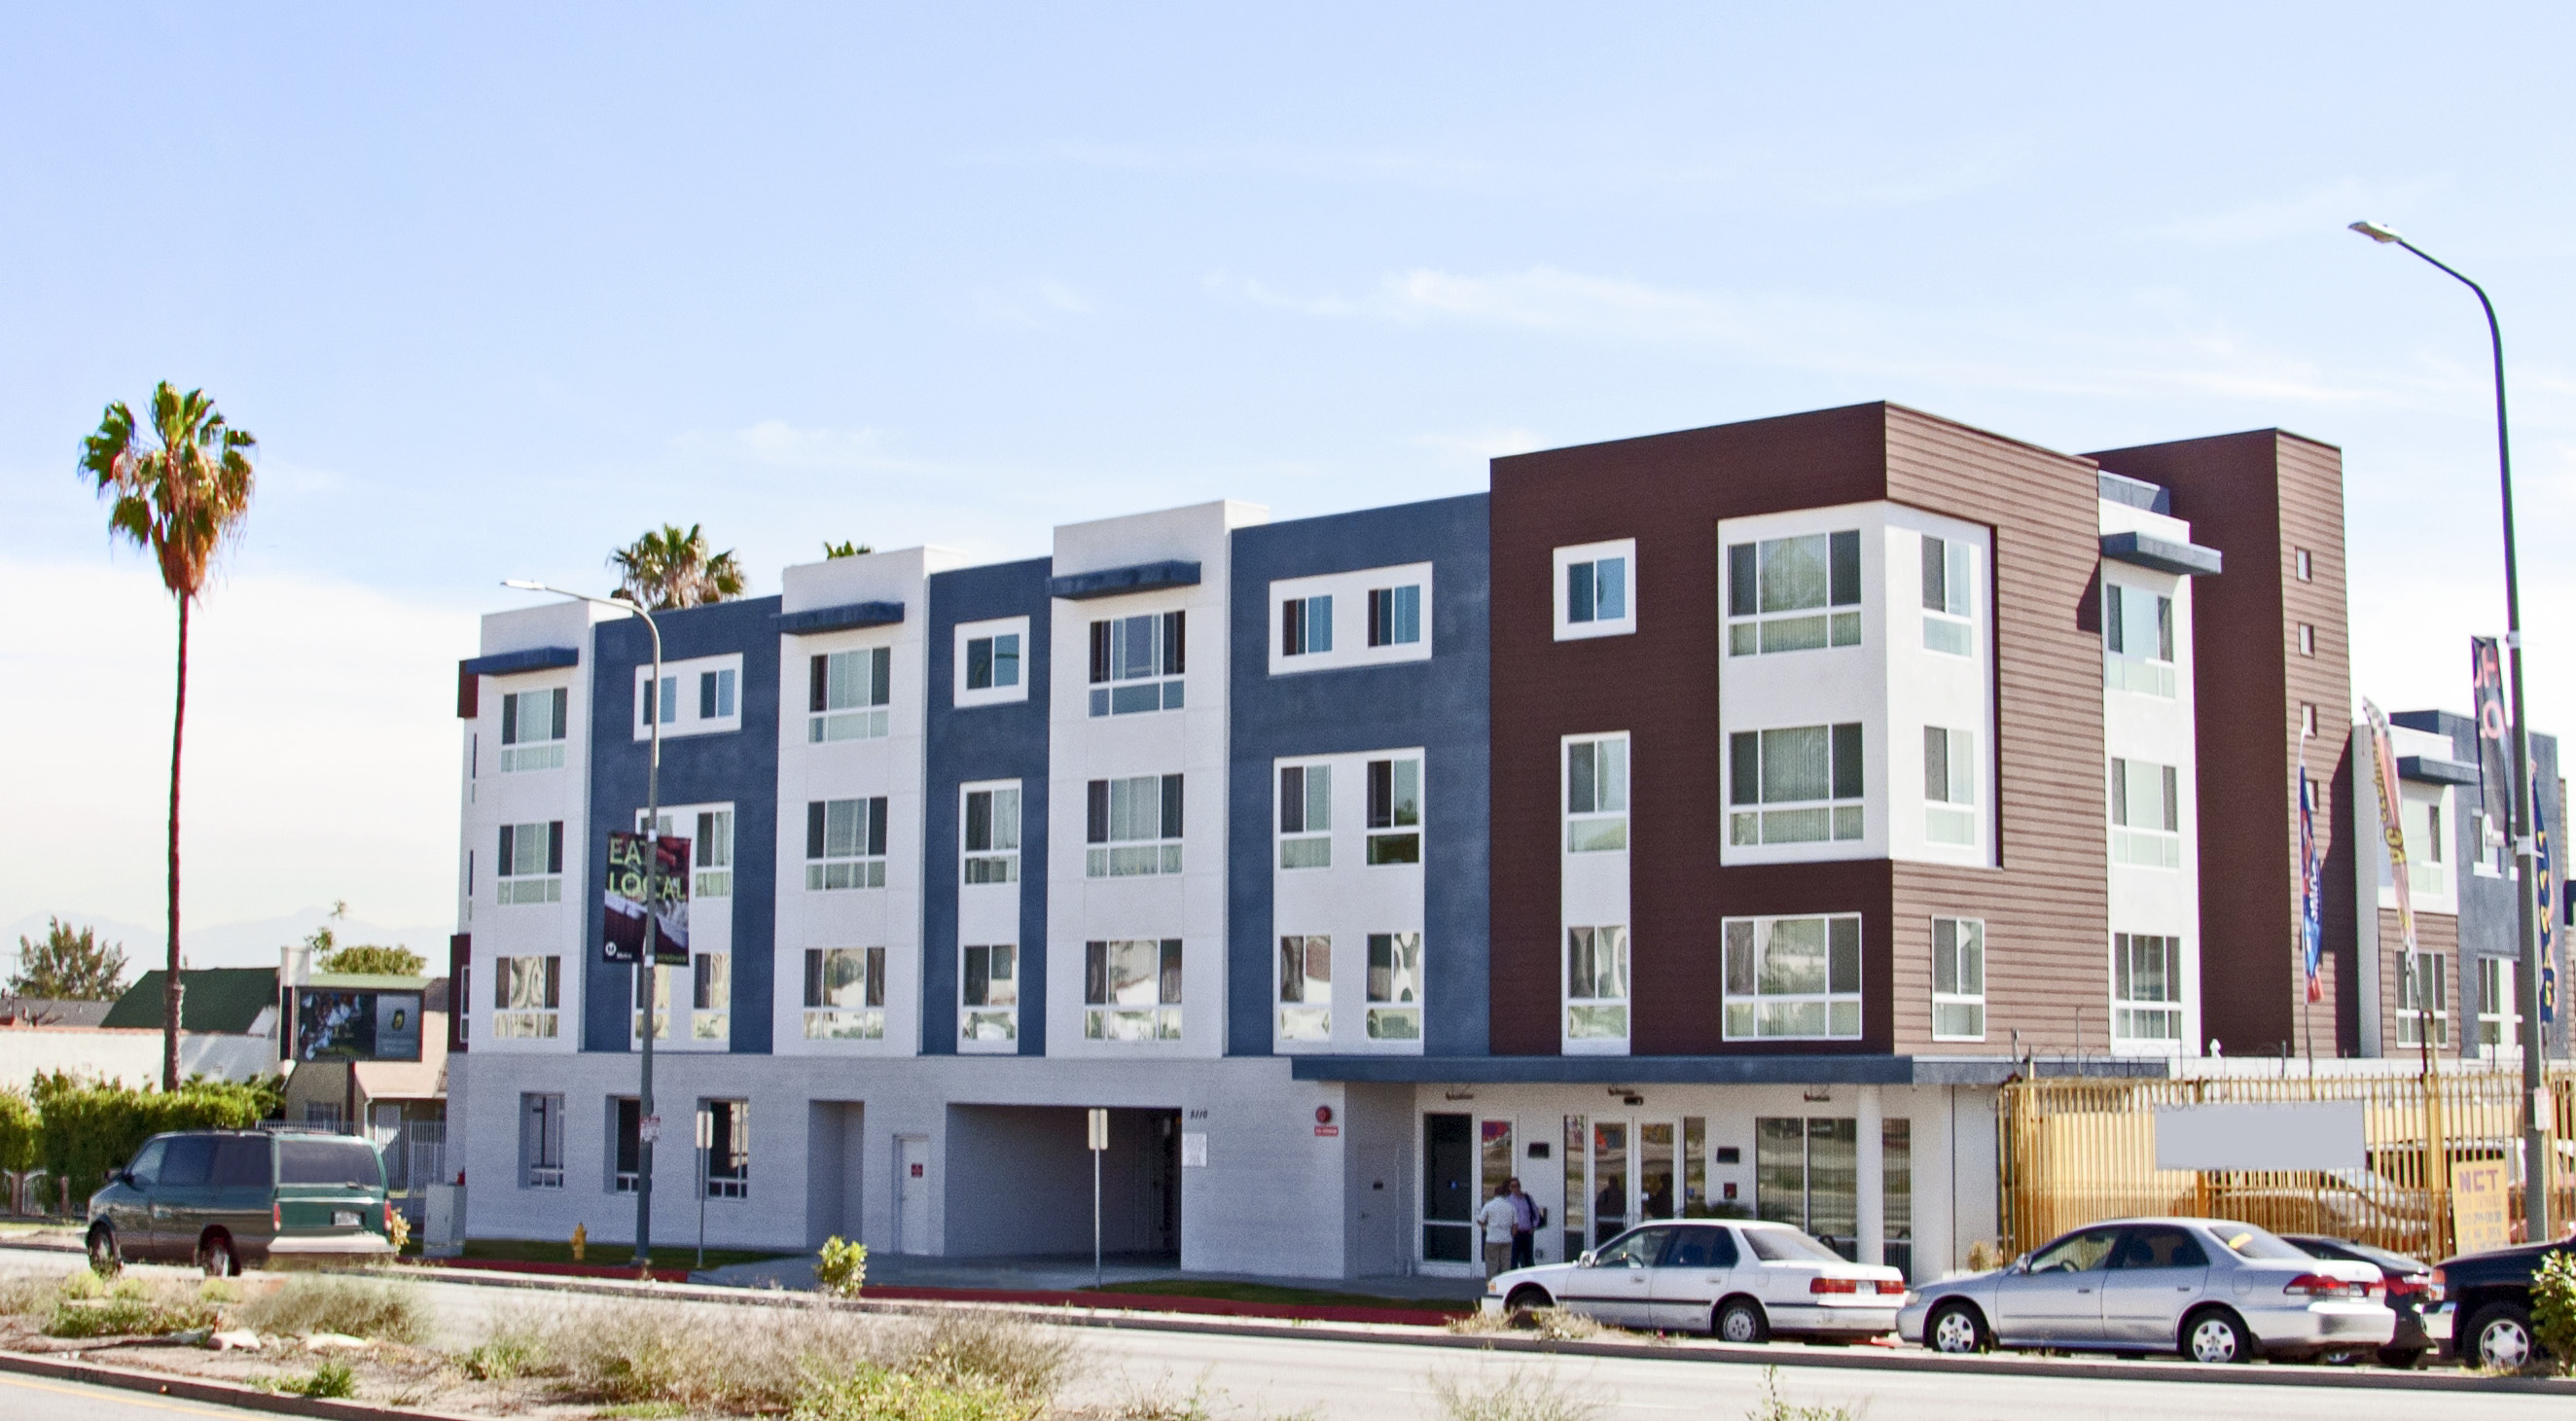 crenshaw family apartments 5110 crenshaw blvd los angeles ca